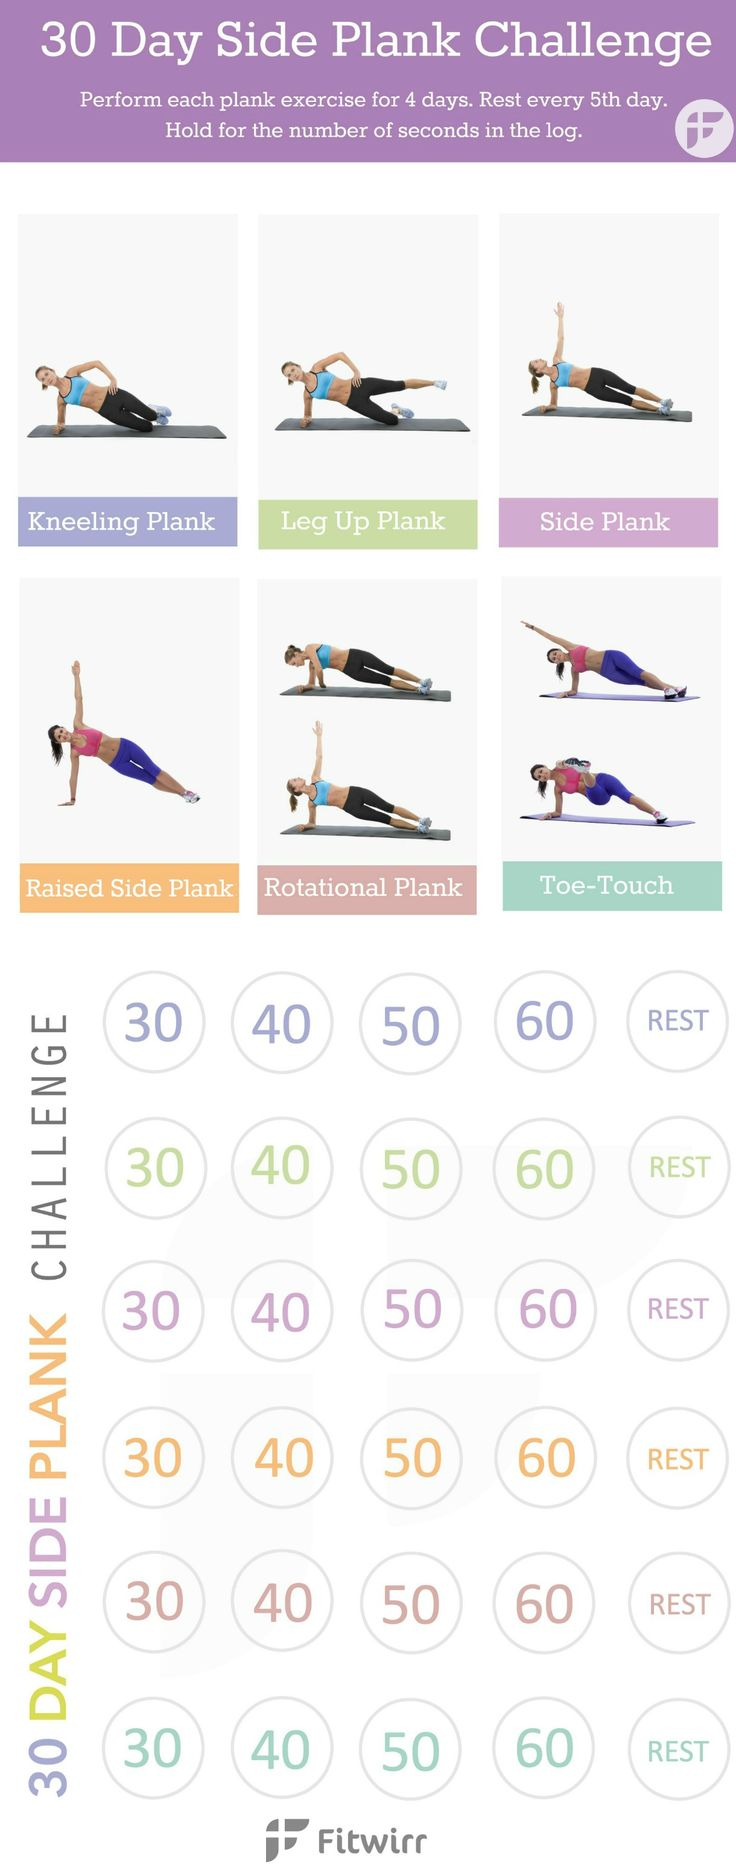 30 Day Side Plank Challenge to melt your love handles and redefine your side abs.